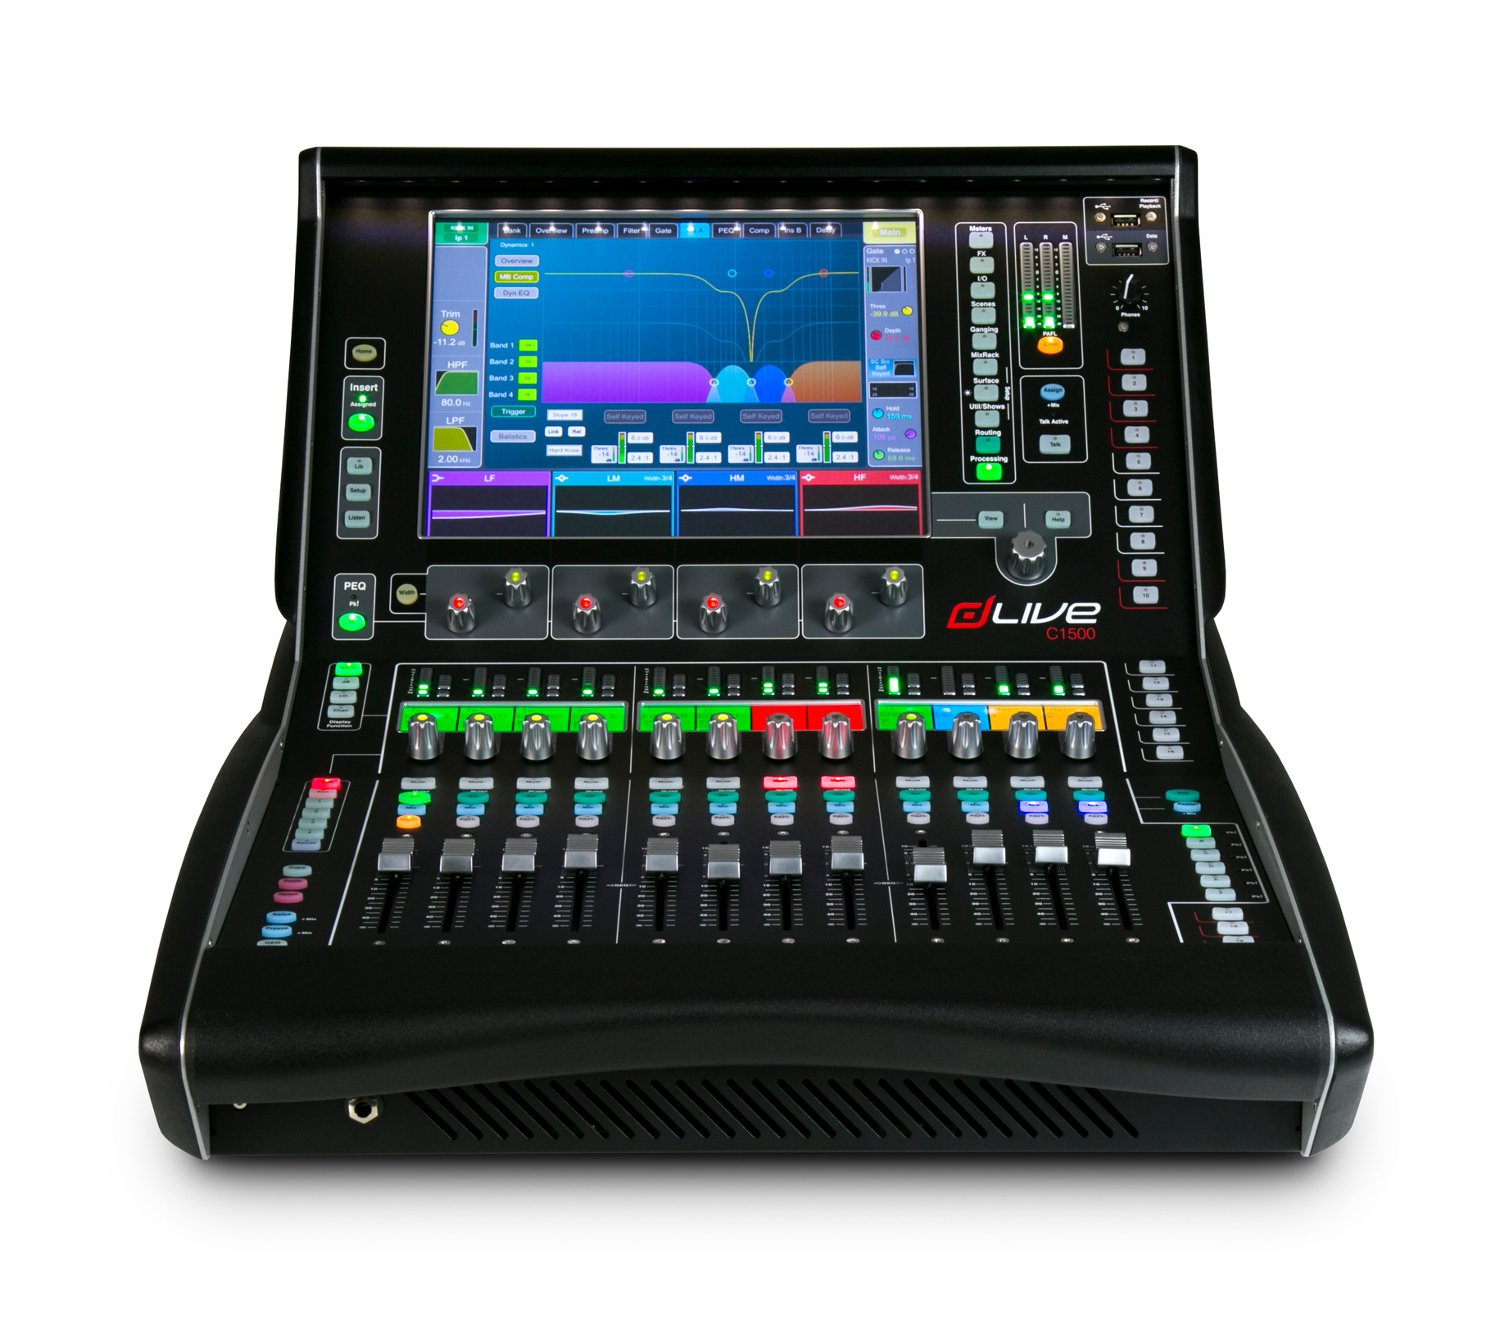 dLive C Class 12 Fader Surface